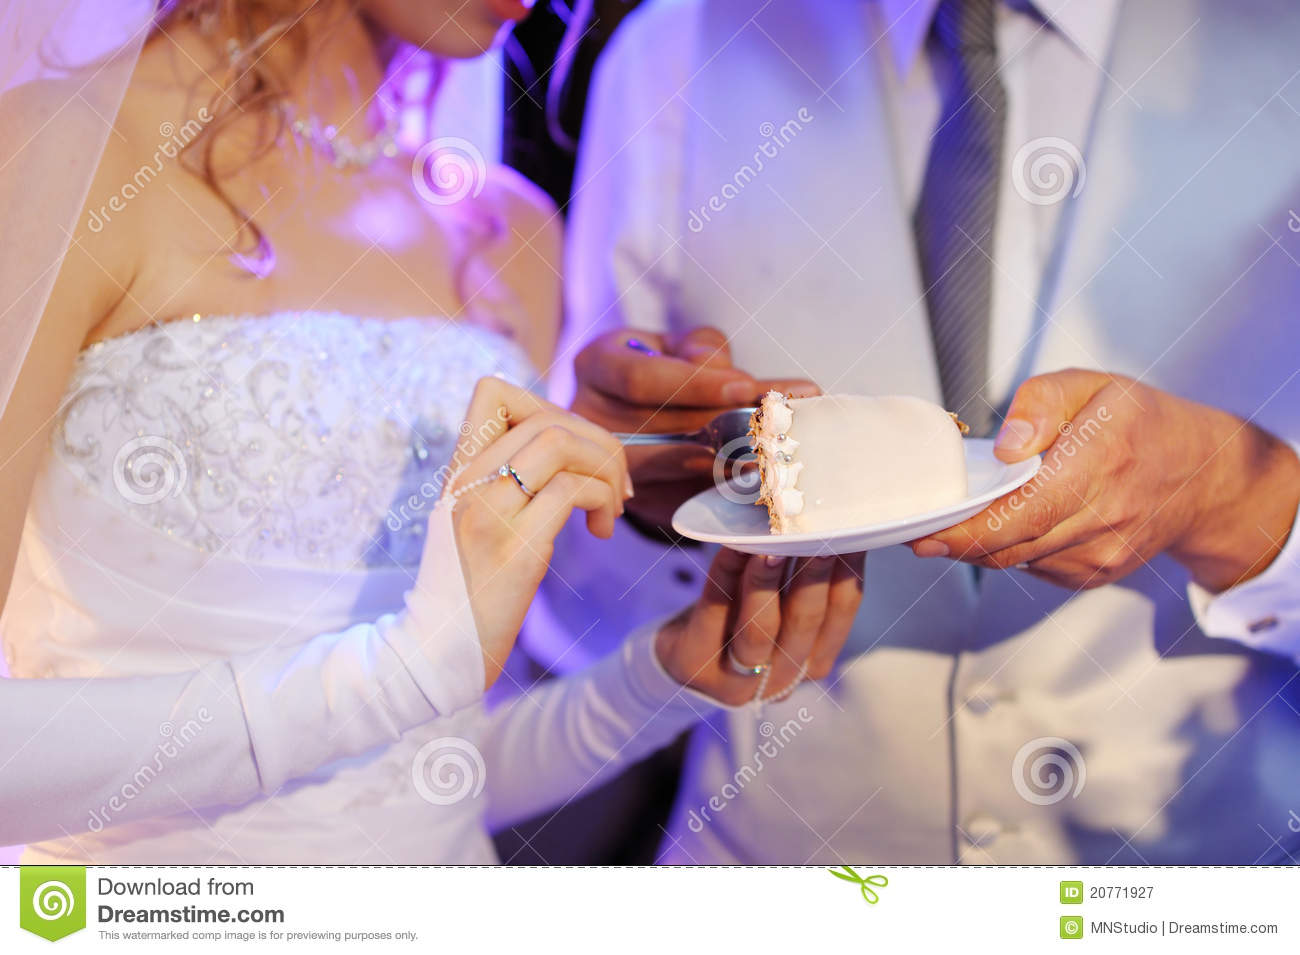 dream meaning eating wedding cake a and a groom are a wedding cake royalty free 13733